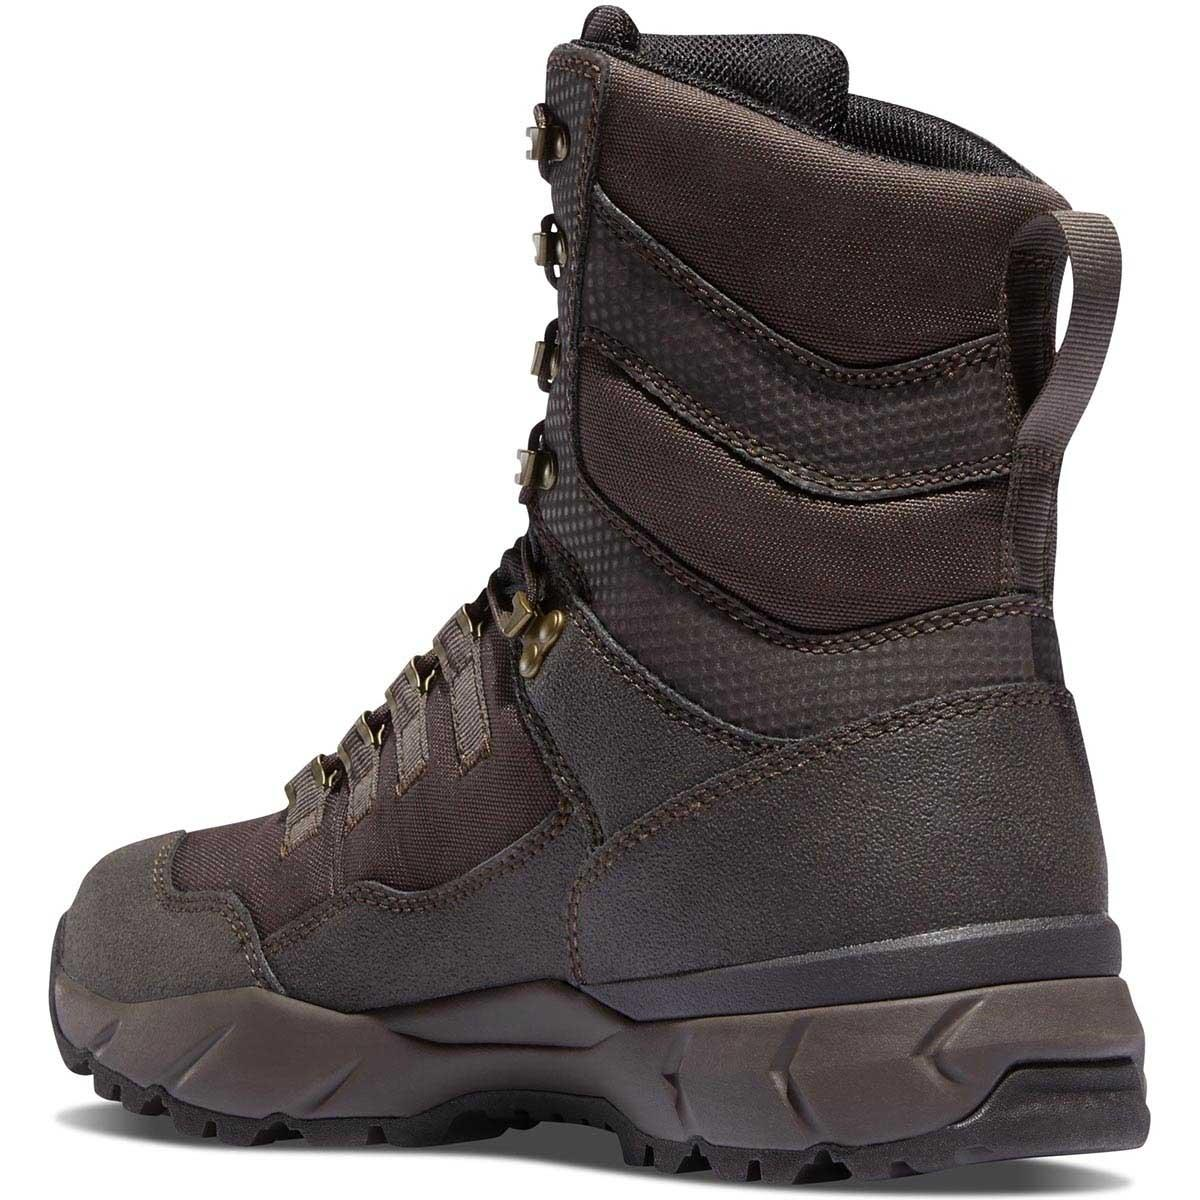 """Danner Vital 8"""" Non-Insulated Hunting Boots_6.jpg"""